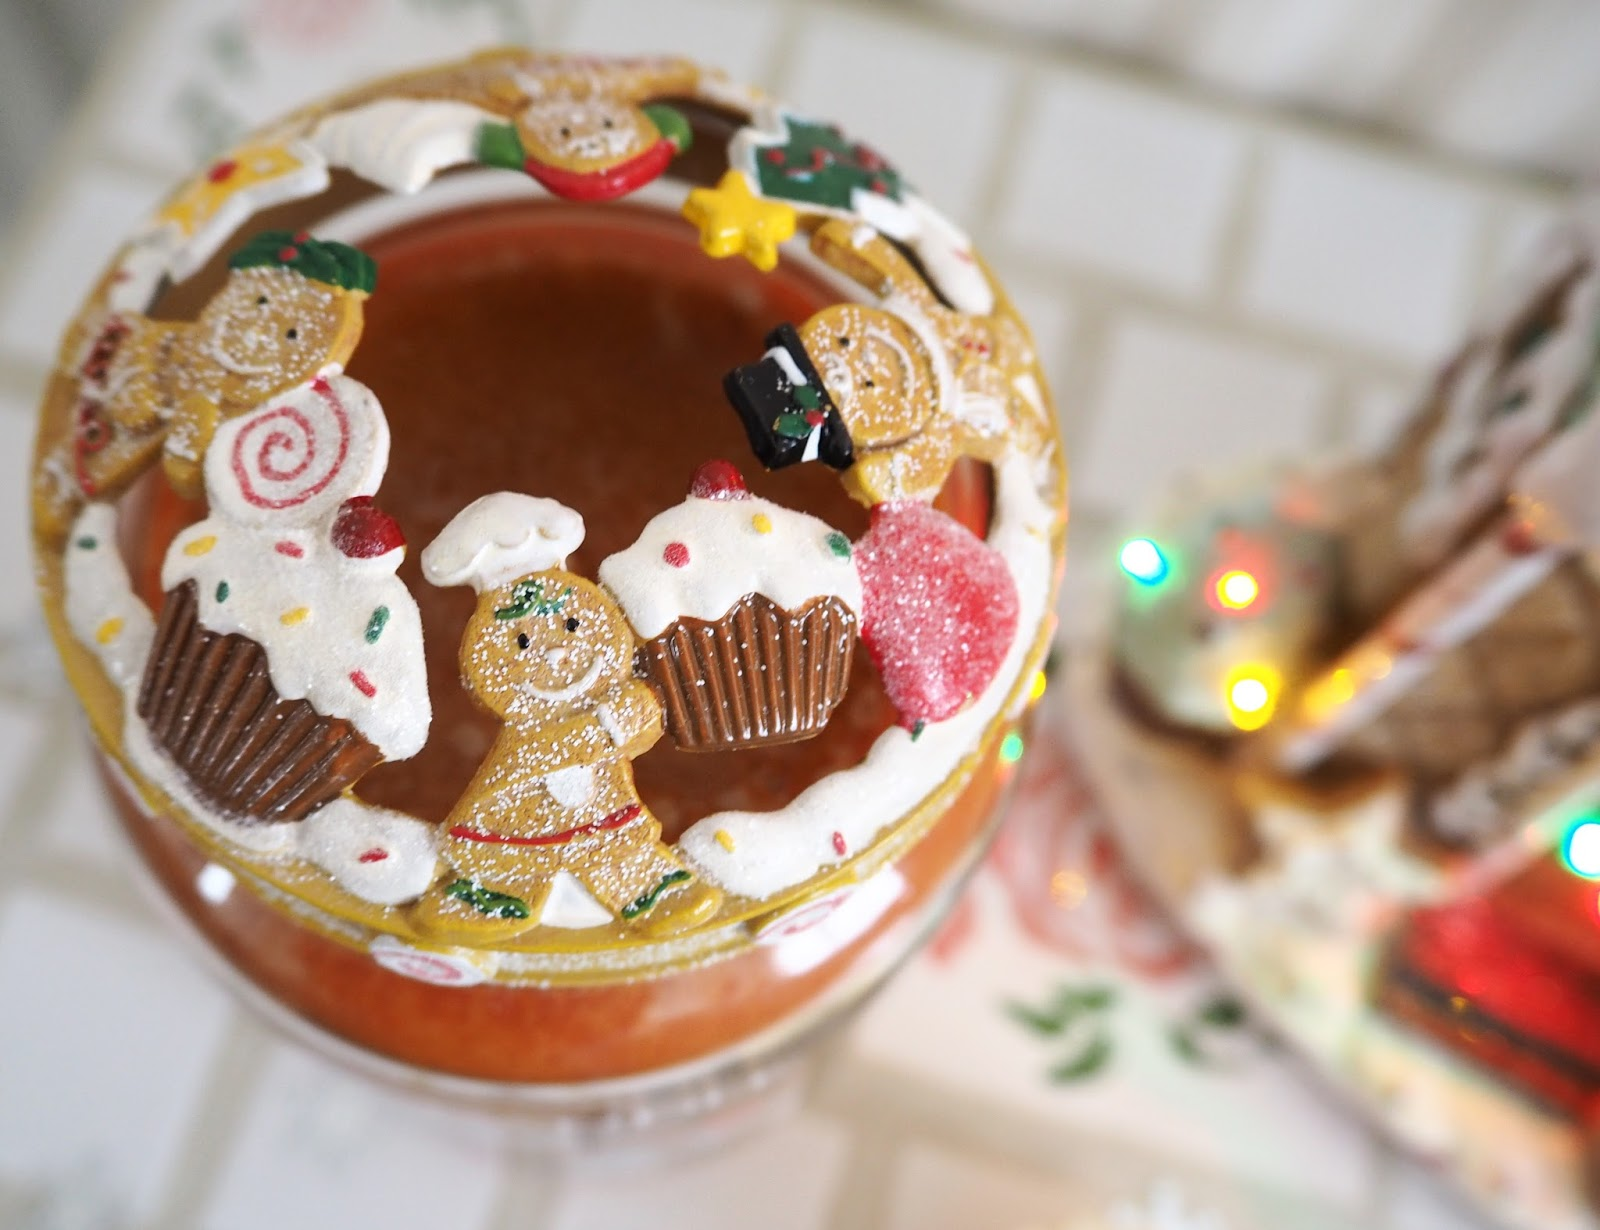 My Christmas Yankee Candles Gingerbread Illumalid | Katie Kirk Loves